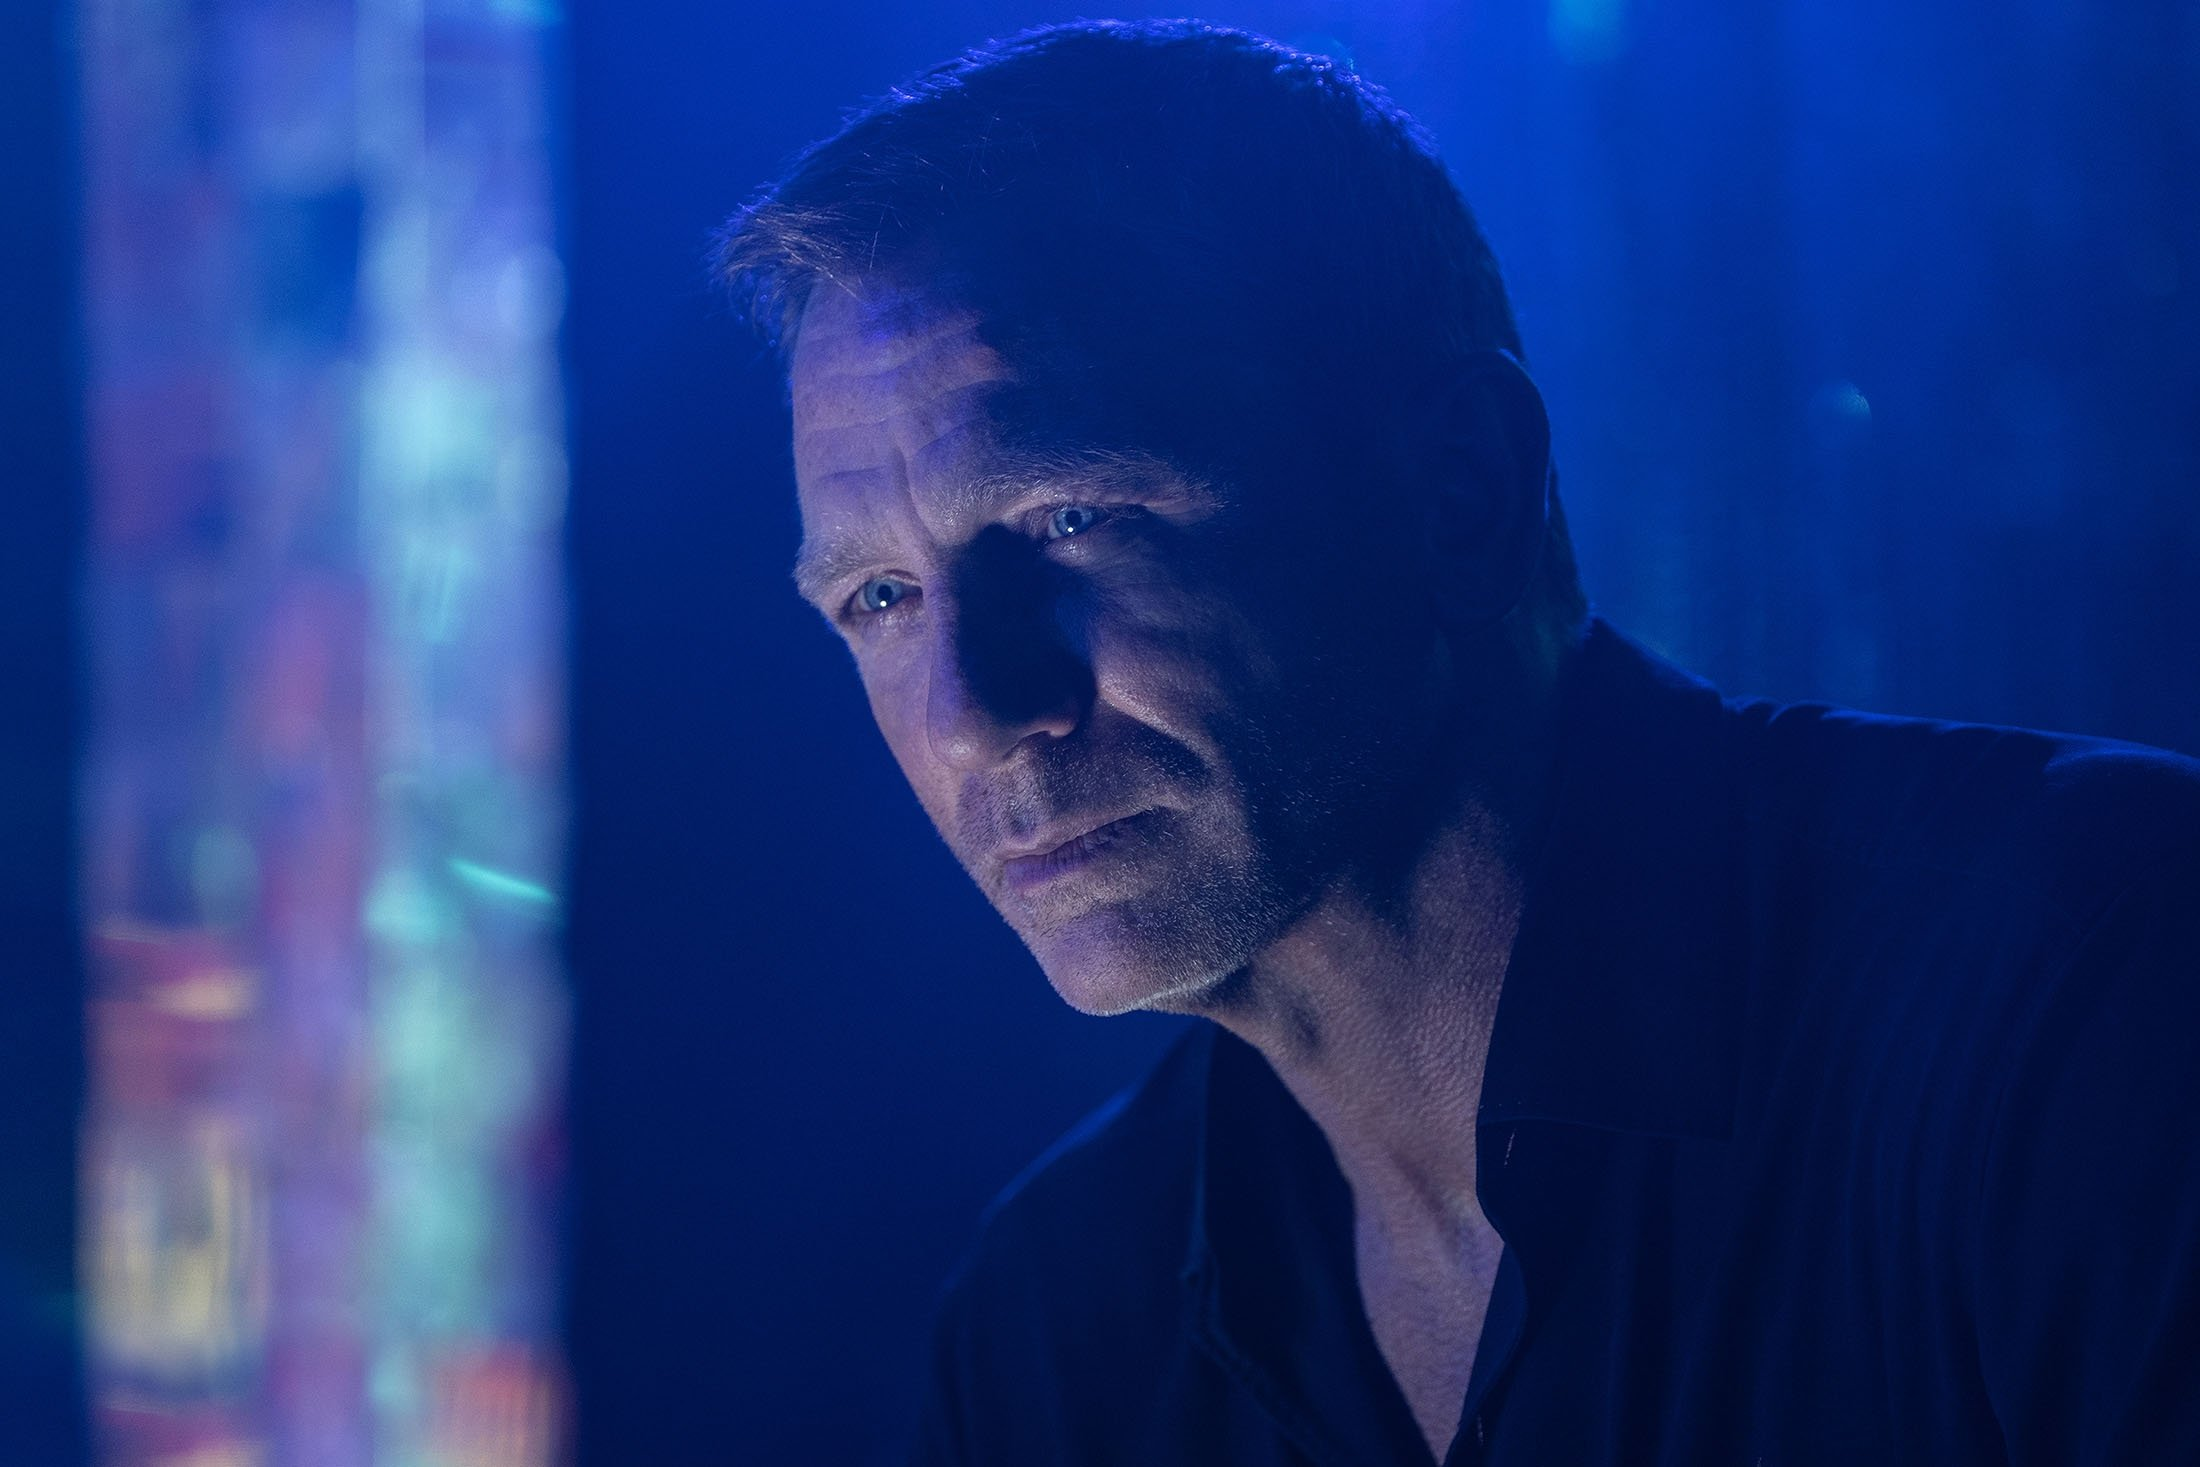 Daniel Craig as James Bond, in a scene from the film 'No Time To Die.' (Metro Goldwyn Mayer Pictures via AP)